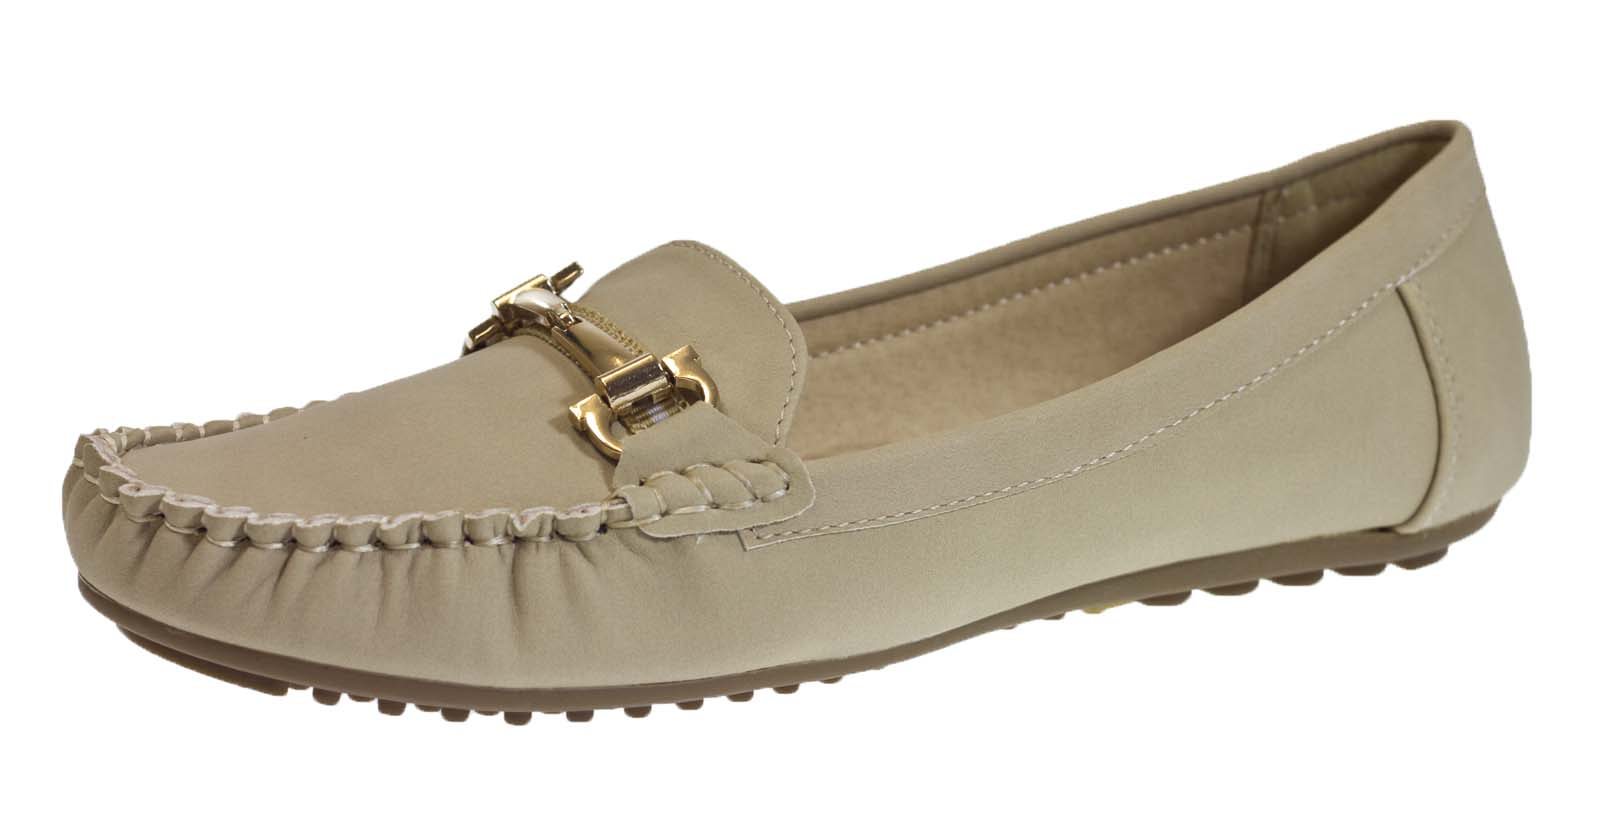 Shop for women's loafers at custifara.ga Next day delivery and free returns available. s of products online now. Buy women's leather & tassel loafers now!